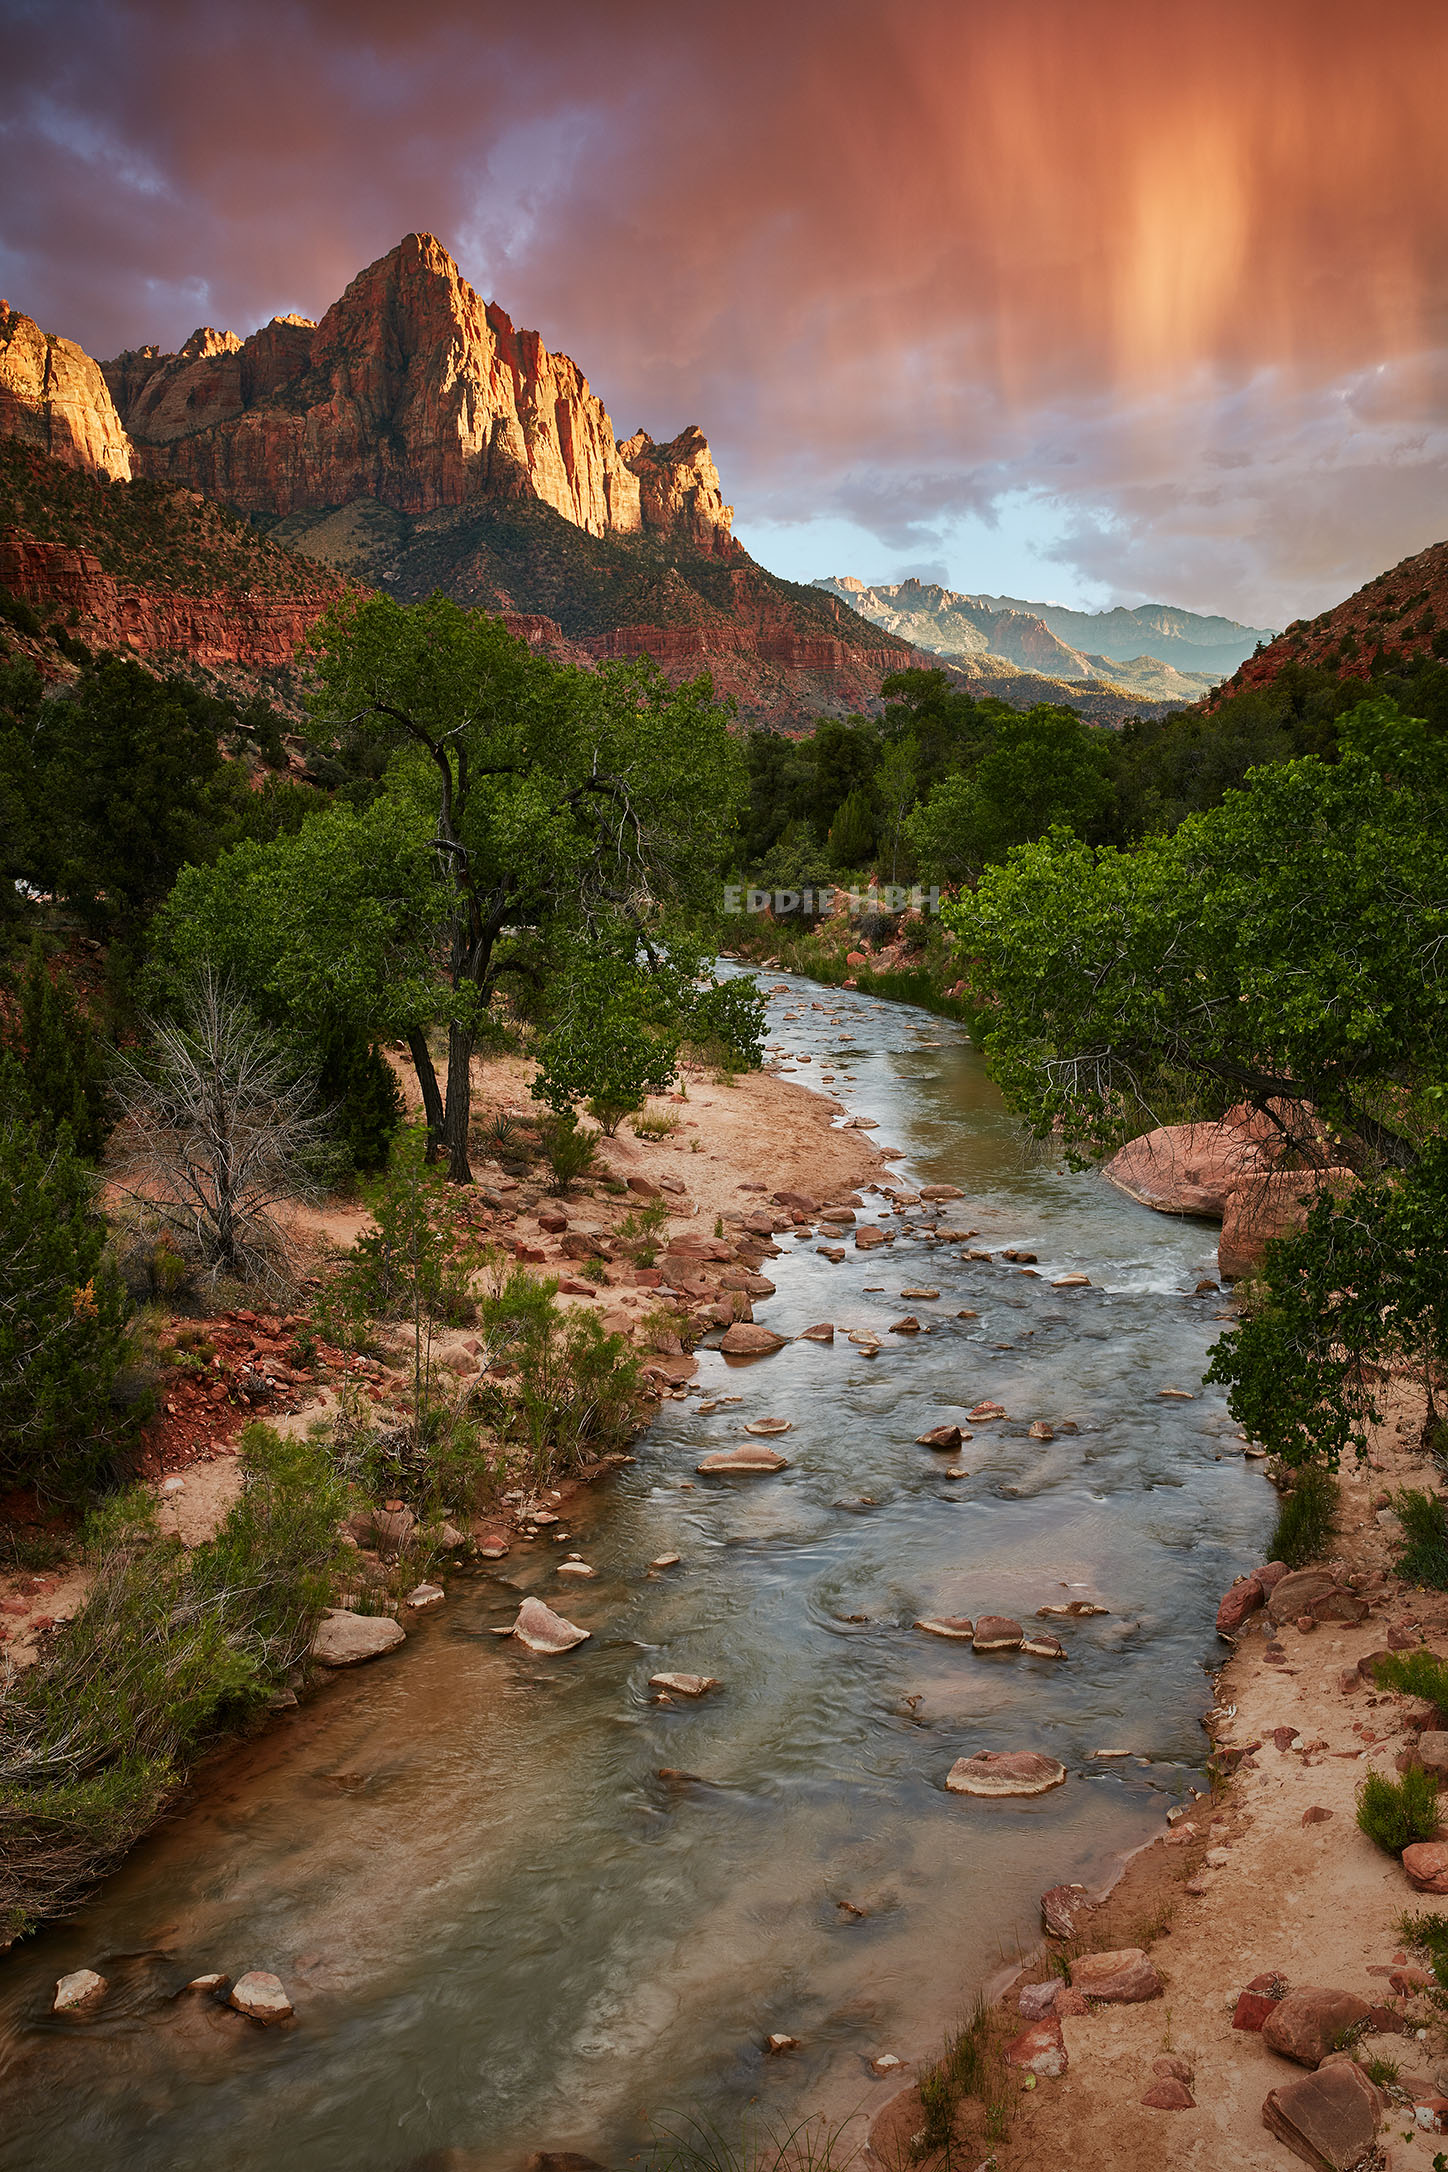 Rainy Sunset in Zion National Park